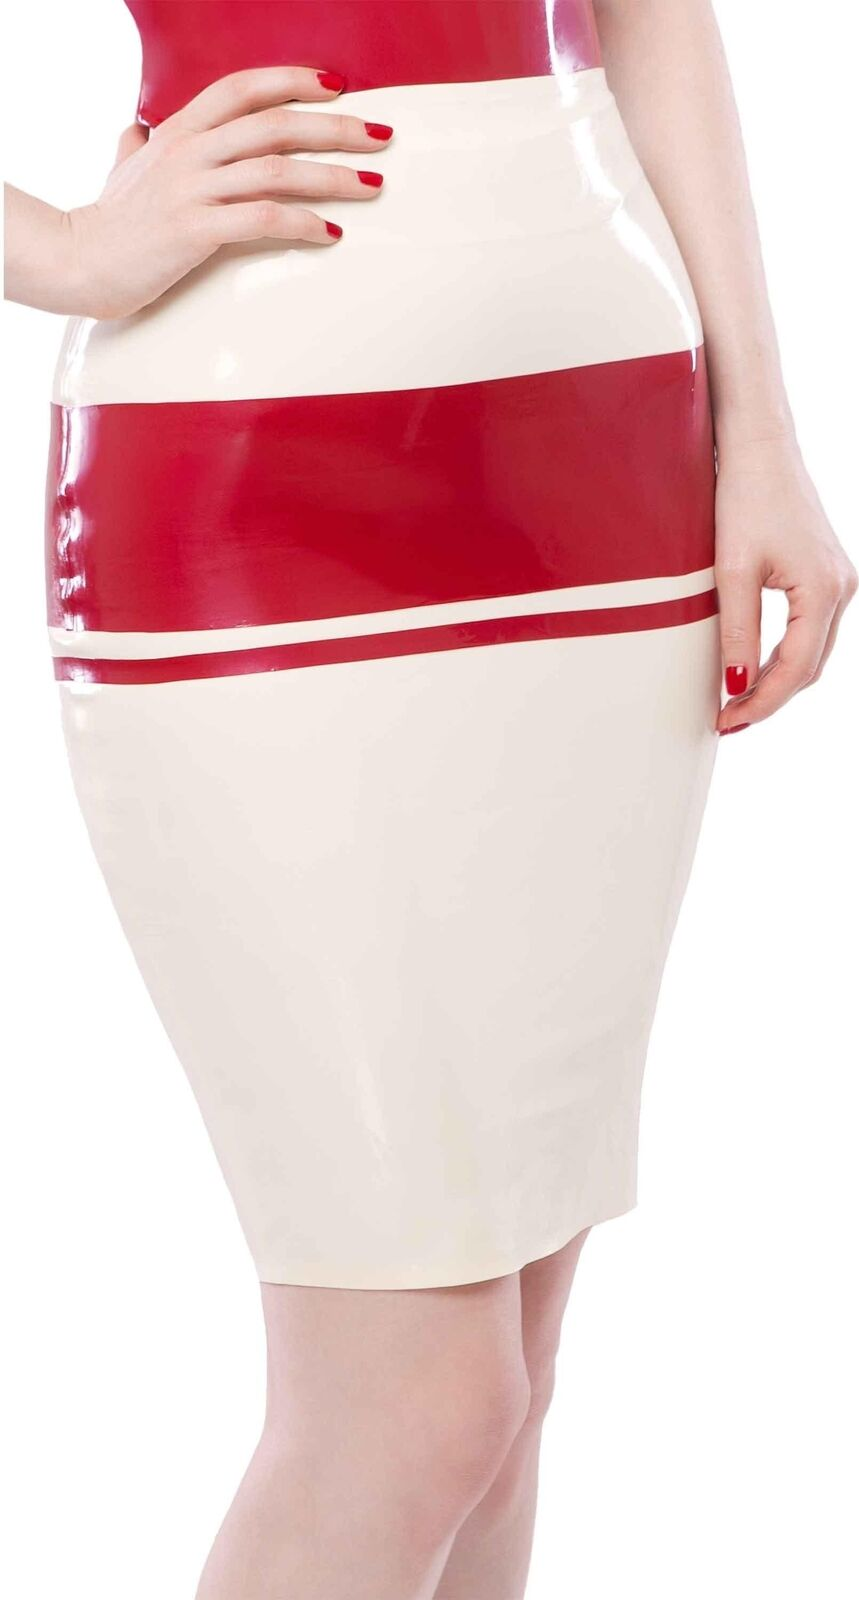 Westward Bound Panel Latex Pencil Skirt Warm White with Pearl Sheen Red Trim